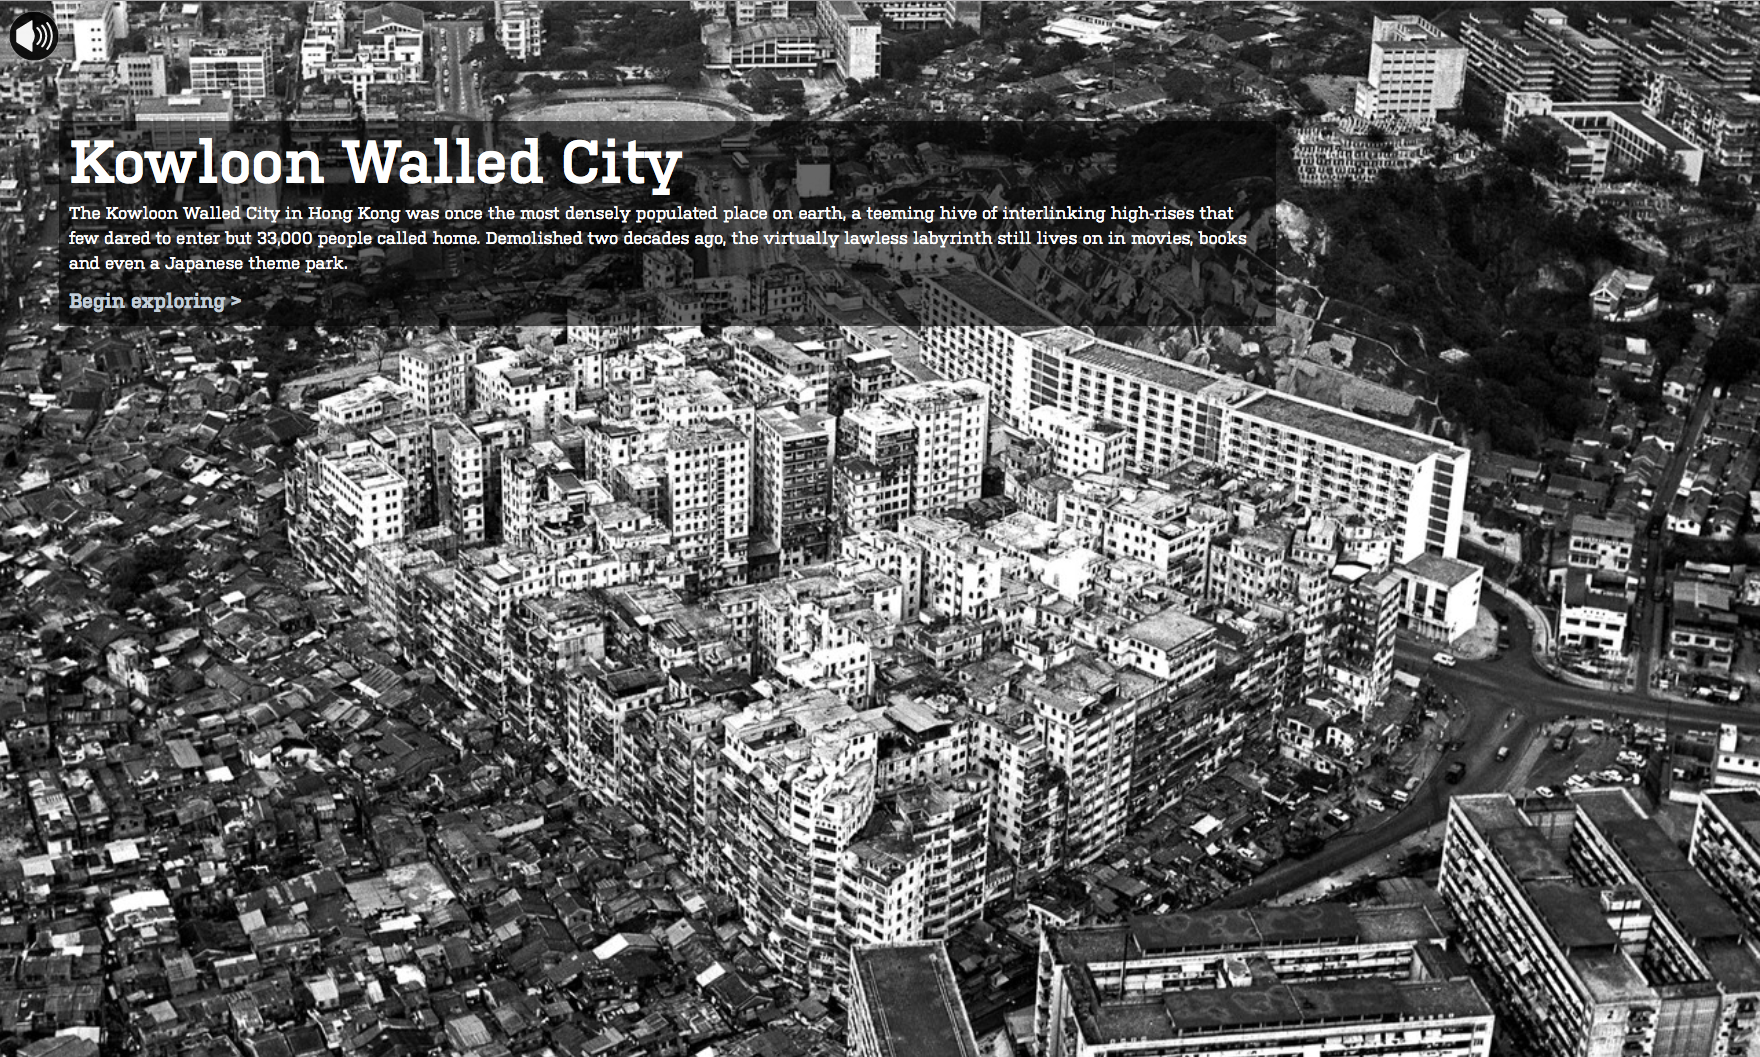 Kowloon Walled City Wsj Digital Storytelling Index